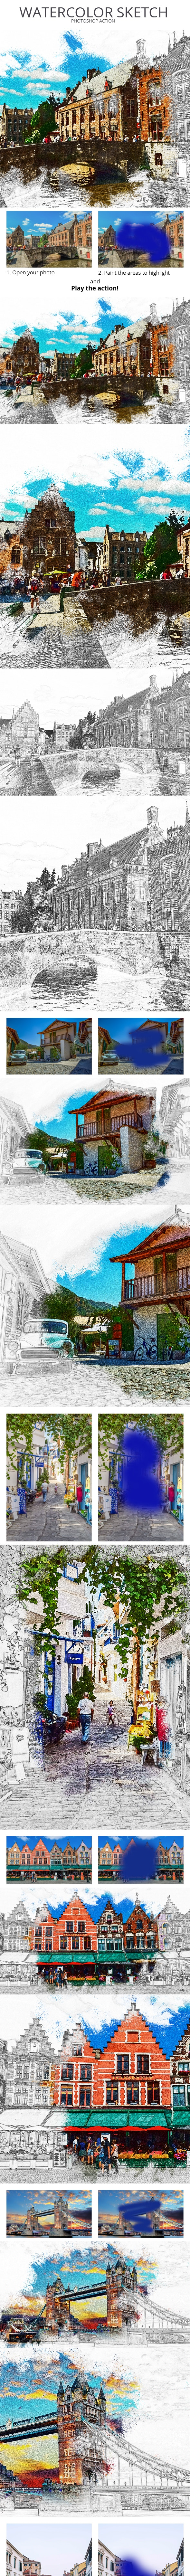 Watercolor Sketch Photoshop Action - Photo Effects Actions